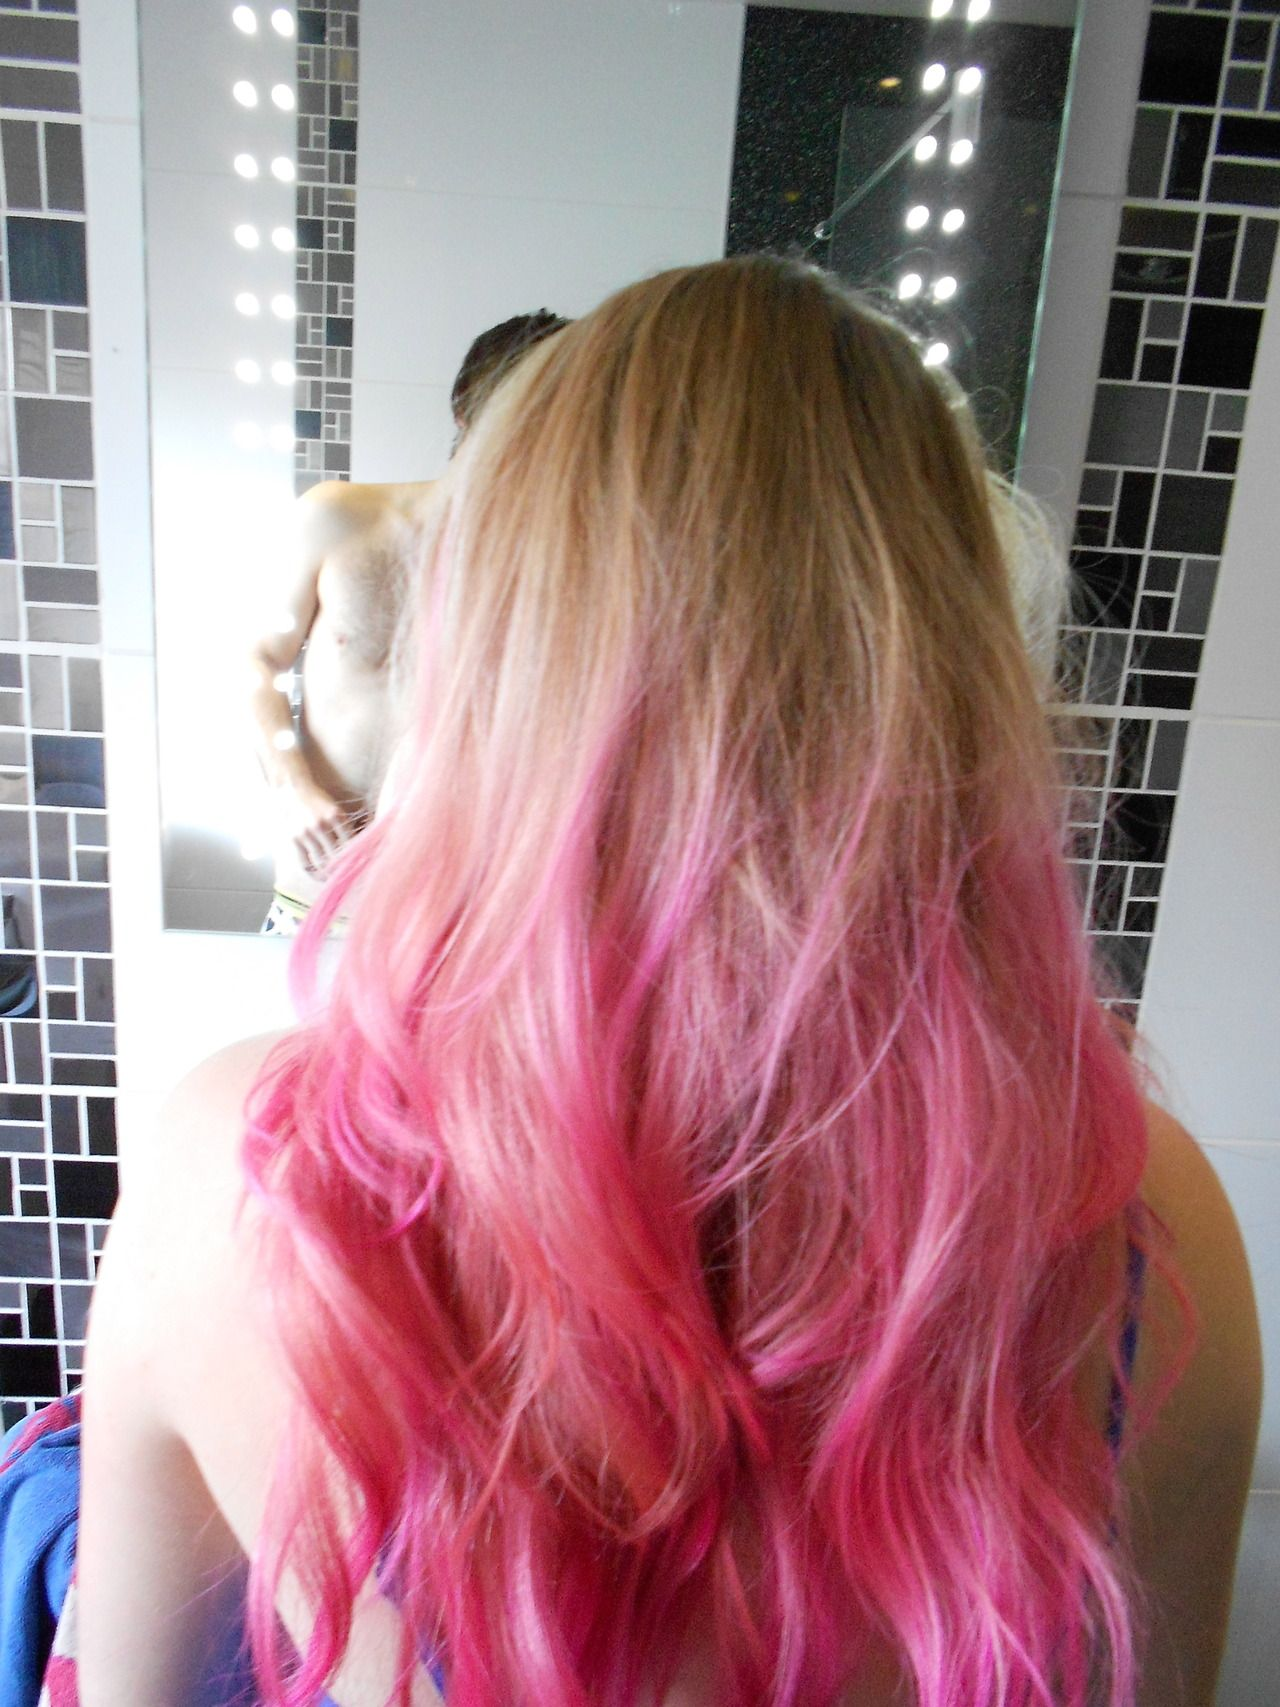 Pink Dip Dyed Ombre Hair Dipped Hair Ombre Hair Pink Dip Dye